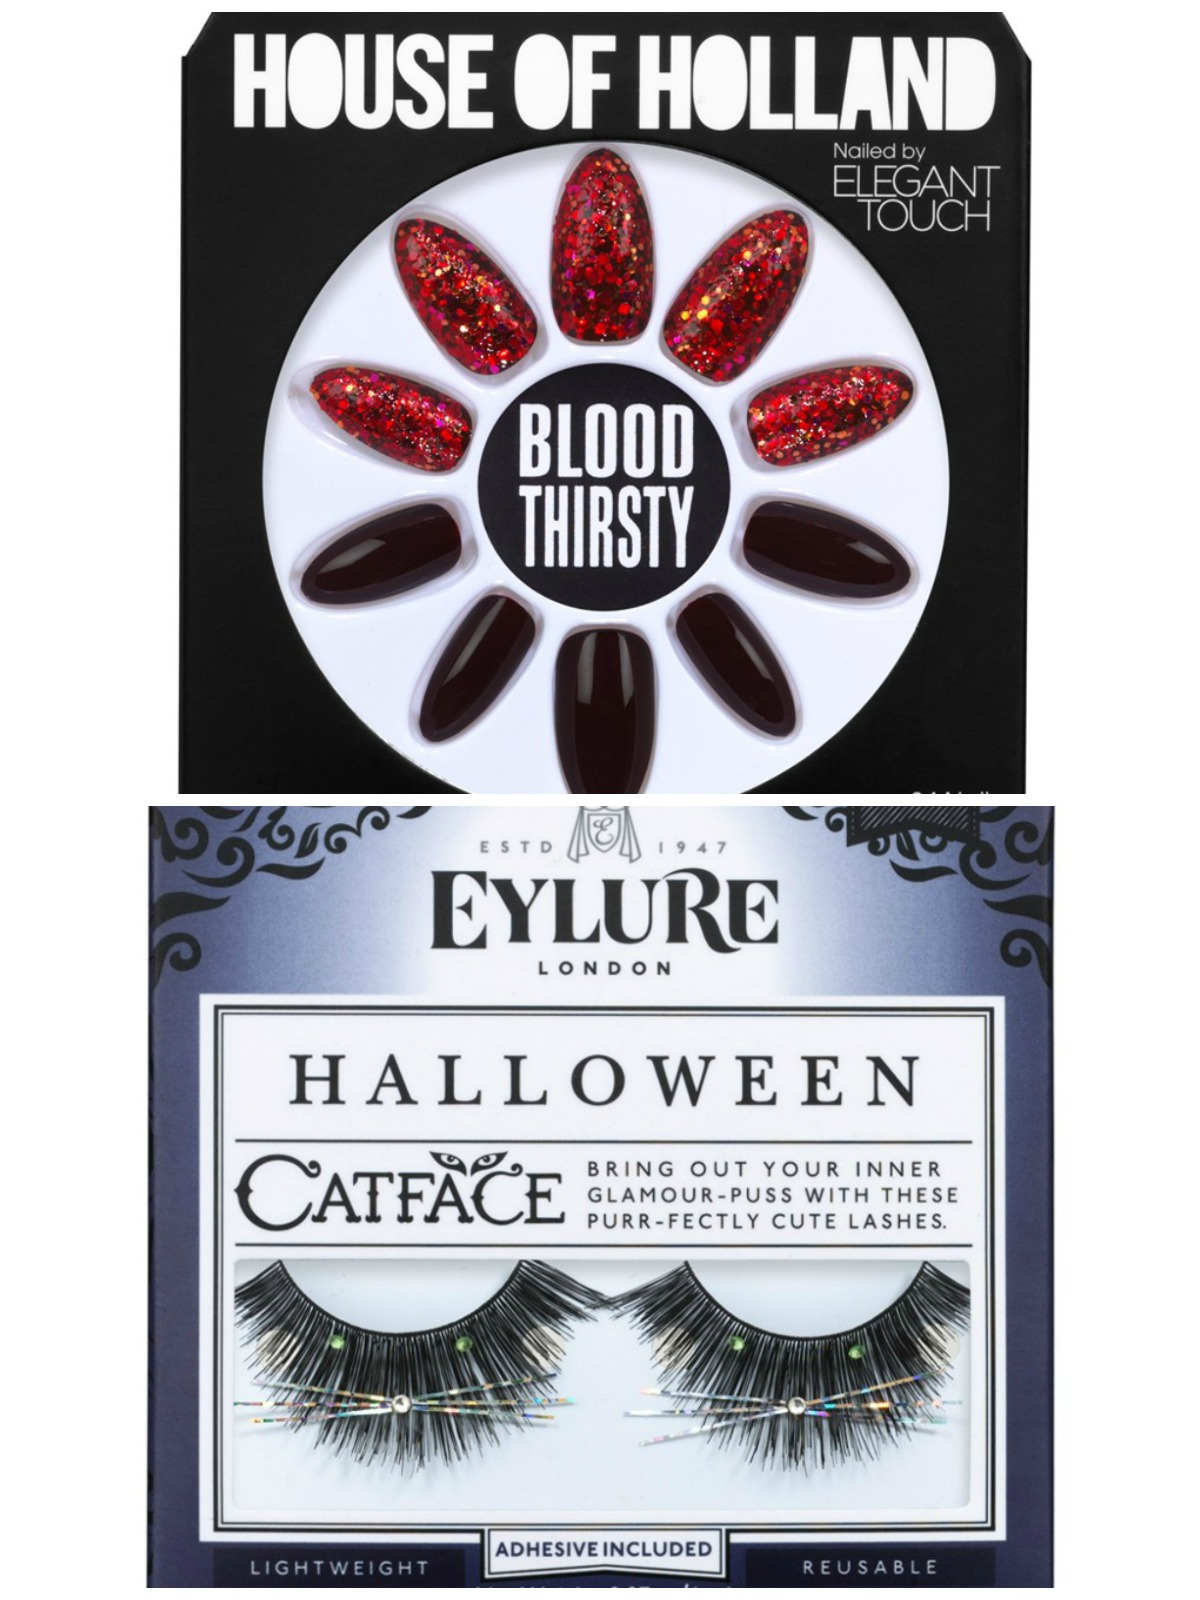 Eylure Halloween Cat Face False Eyelashesand Elegant Touch House of Holland Blood Thirsty Nails